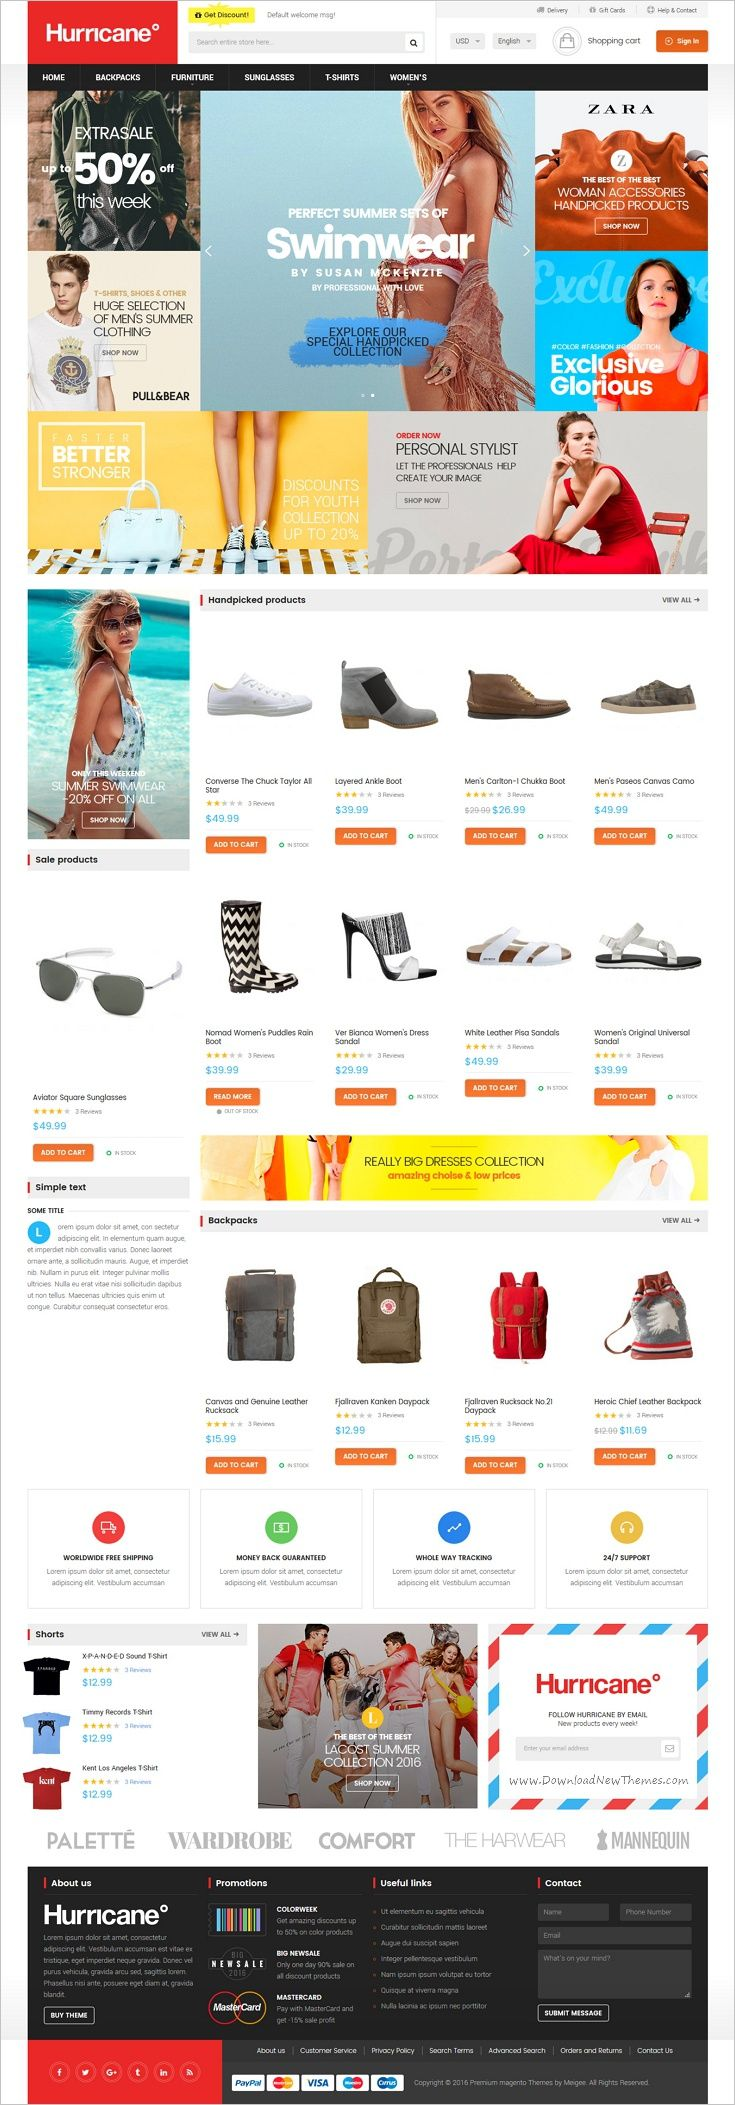 Hurricane is beautifully design #Magento 2 theme for #webdev stunning #fashion #store eCommerce website download now➩ https://themeforest.net/item/hurricane-fashion-magento-2-theme/18565240?ref=Datasata